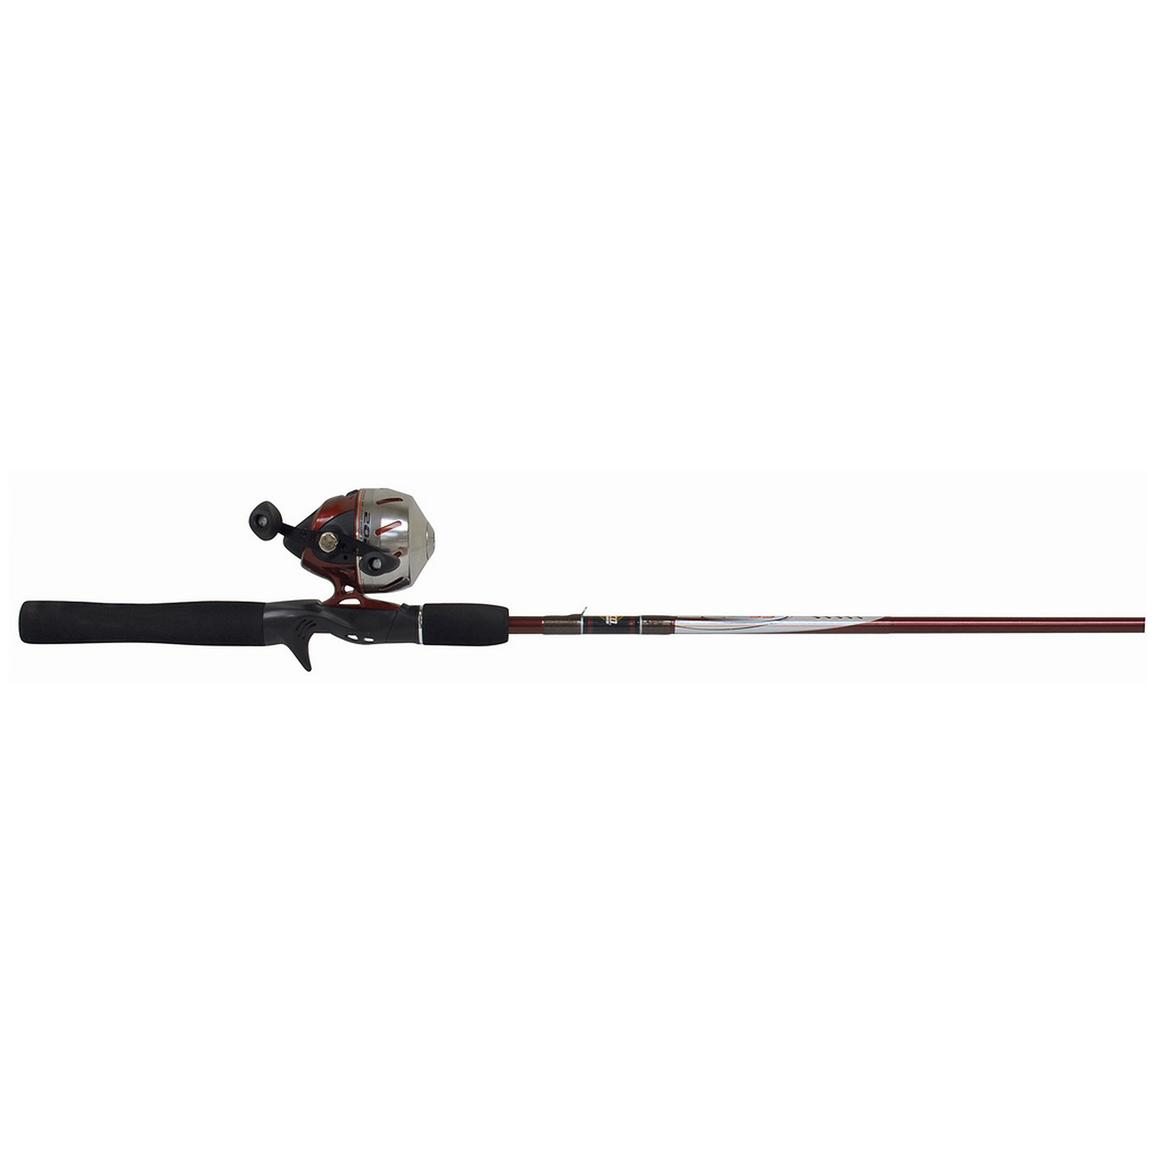 Zebco® Stainless Steel 101 Spincast Rod and Reel Combo